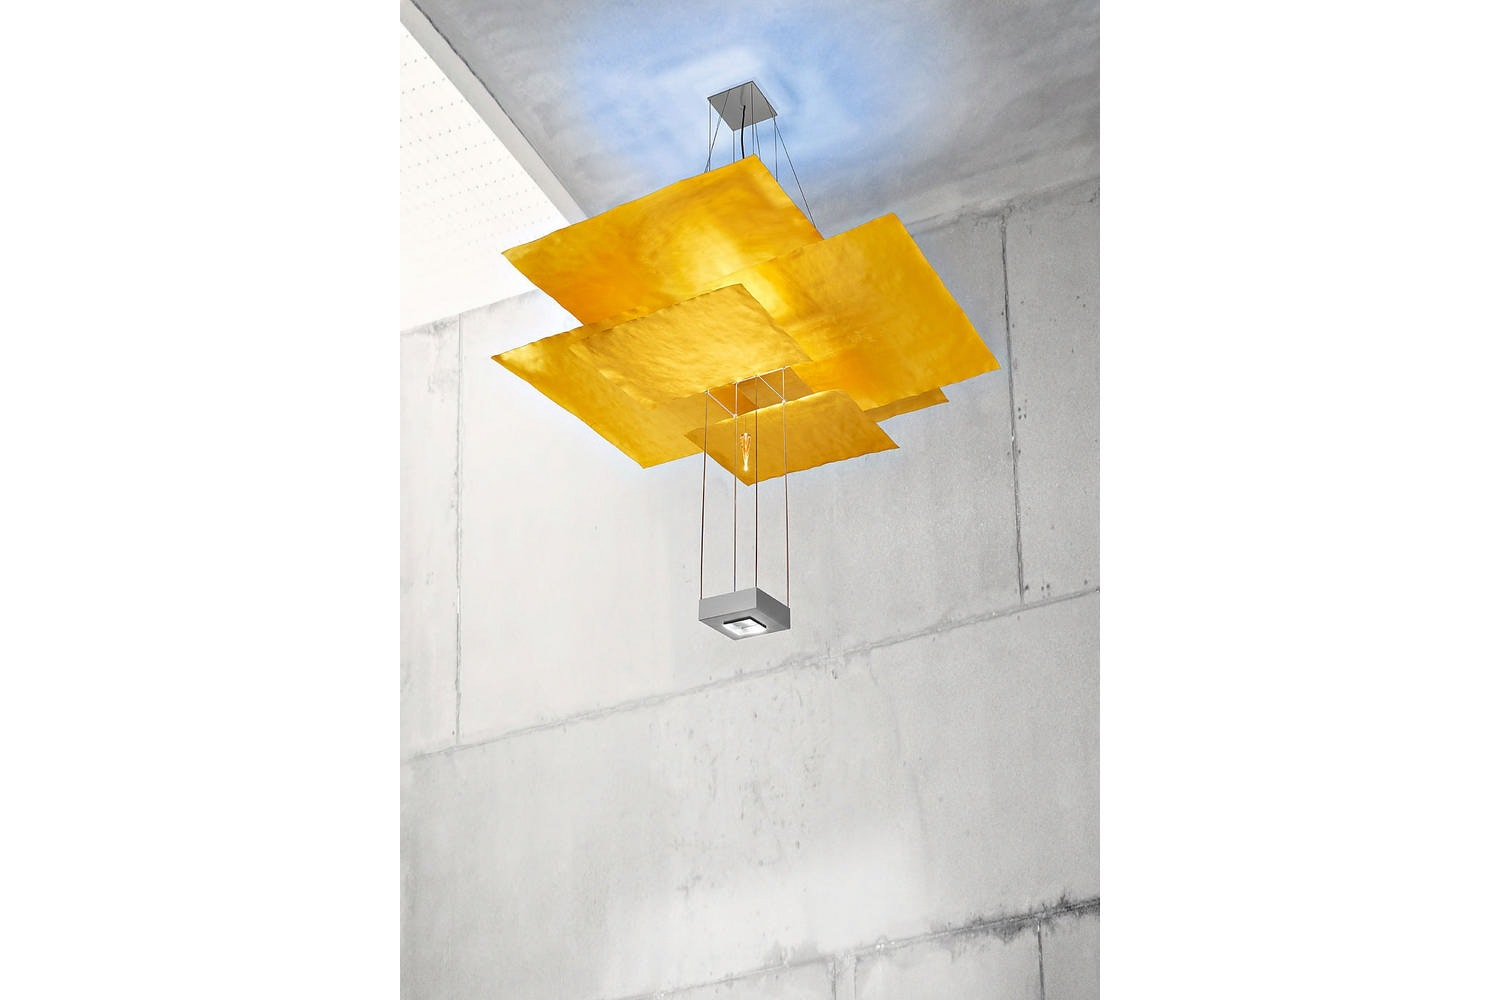 Oh Mei Ma Kabir Suspension Lamp by Ingo Maurer und Team for Ingo Maurer